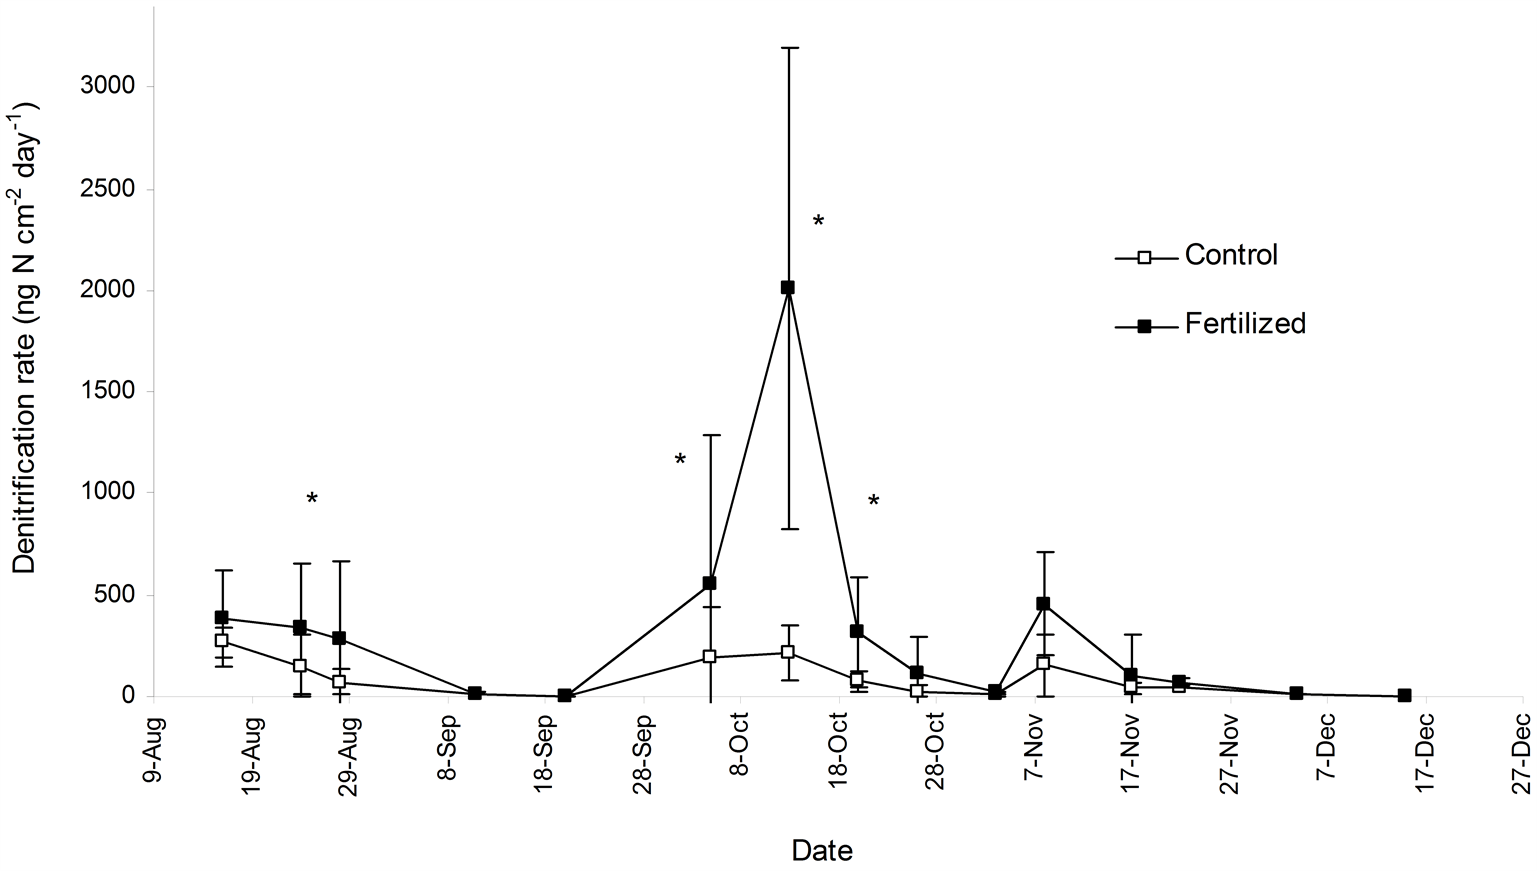 Denitrification In A Soil Under Wheat Crop In The Humid